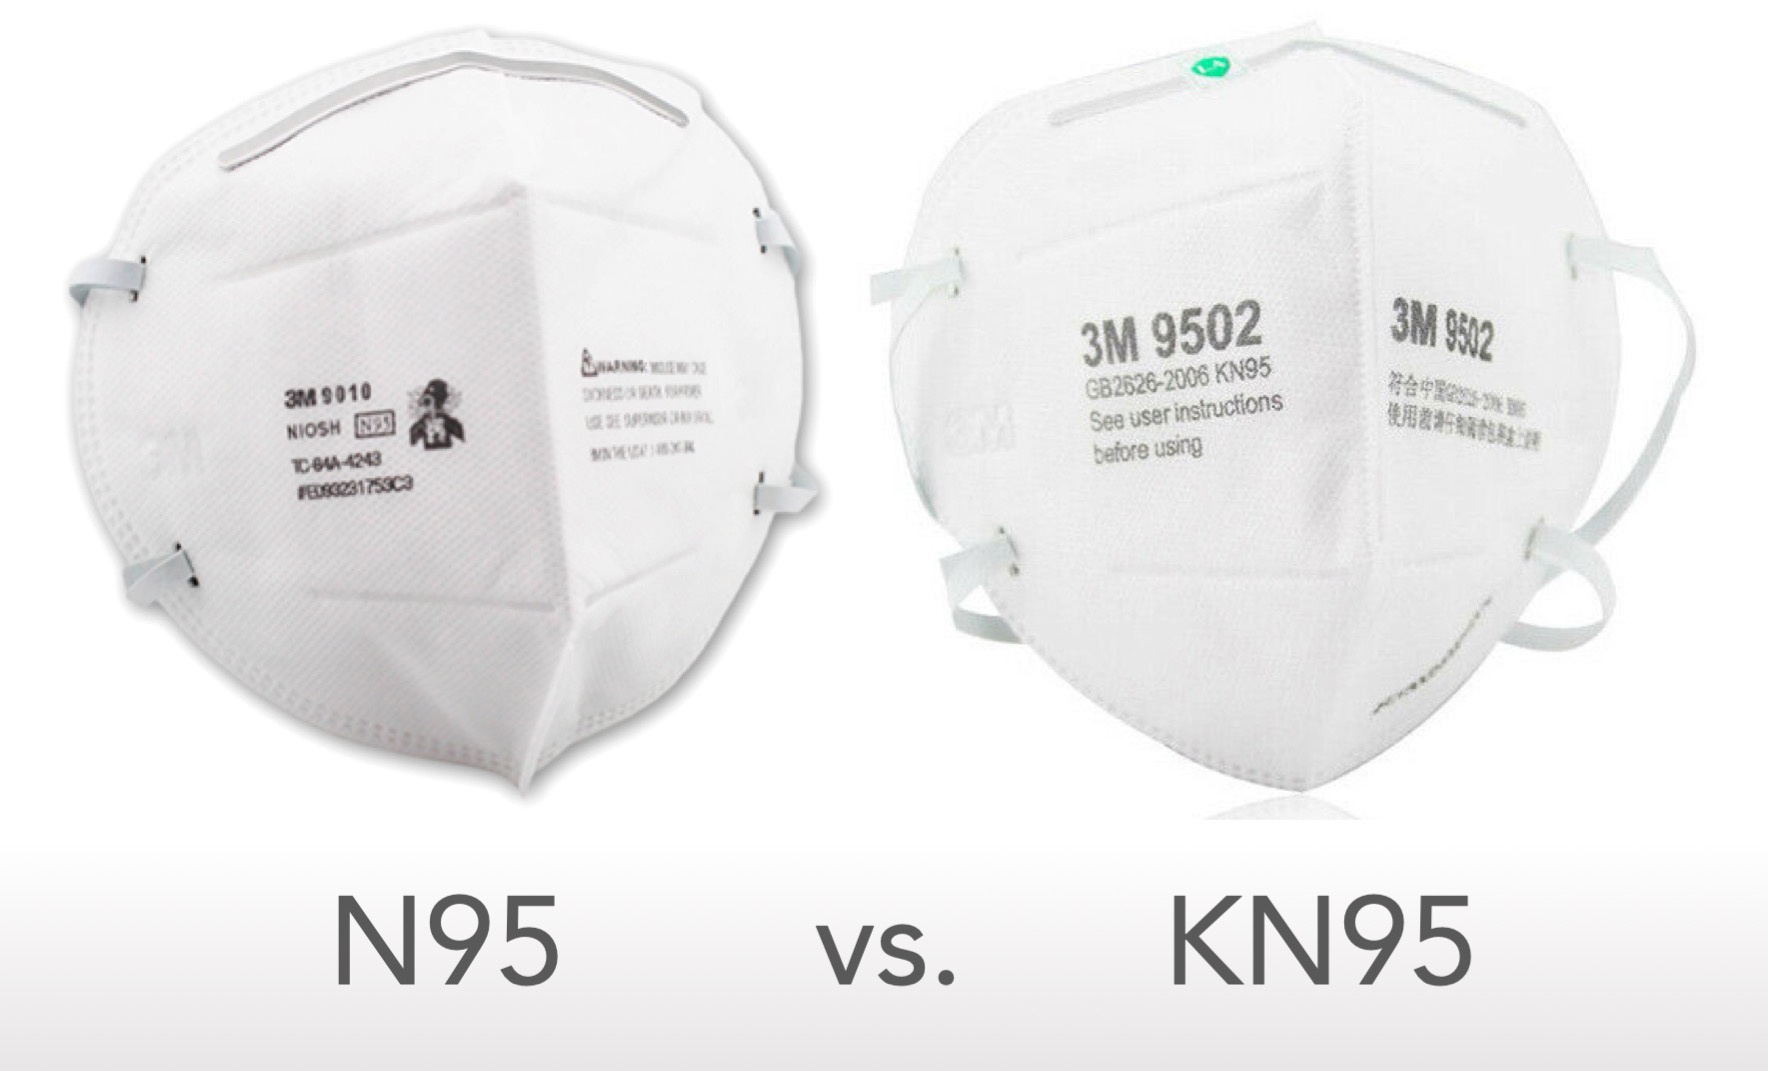 Differences Between N95 and KN95 Masks standards